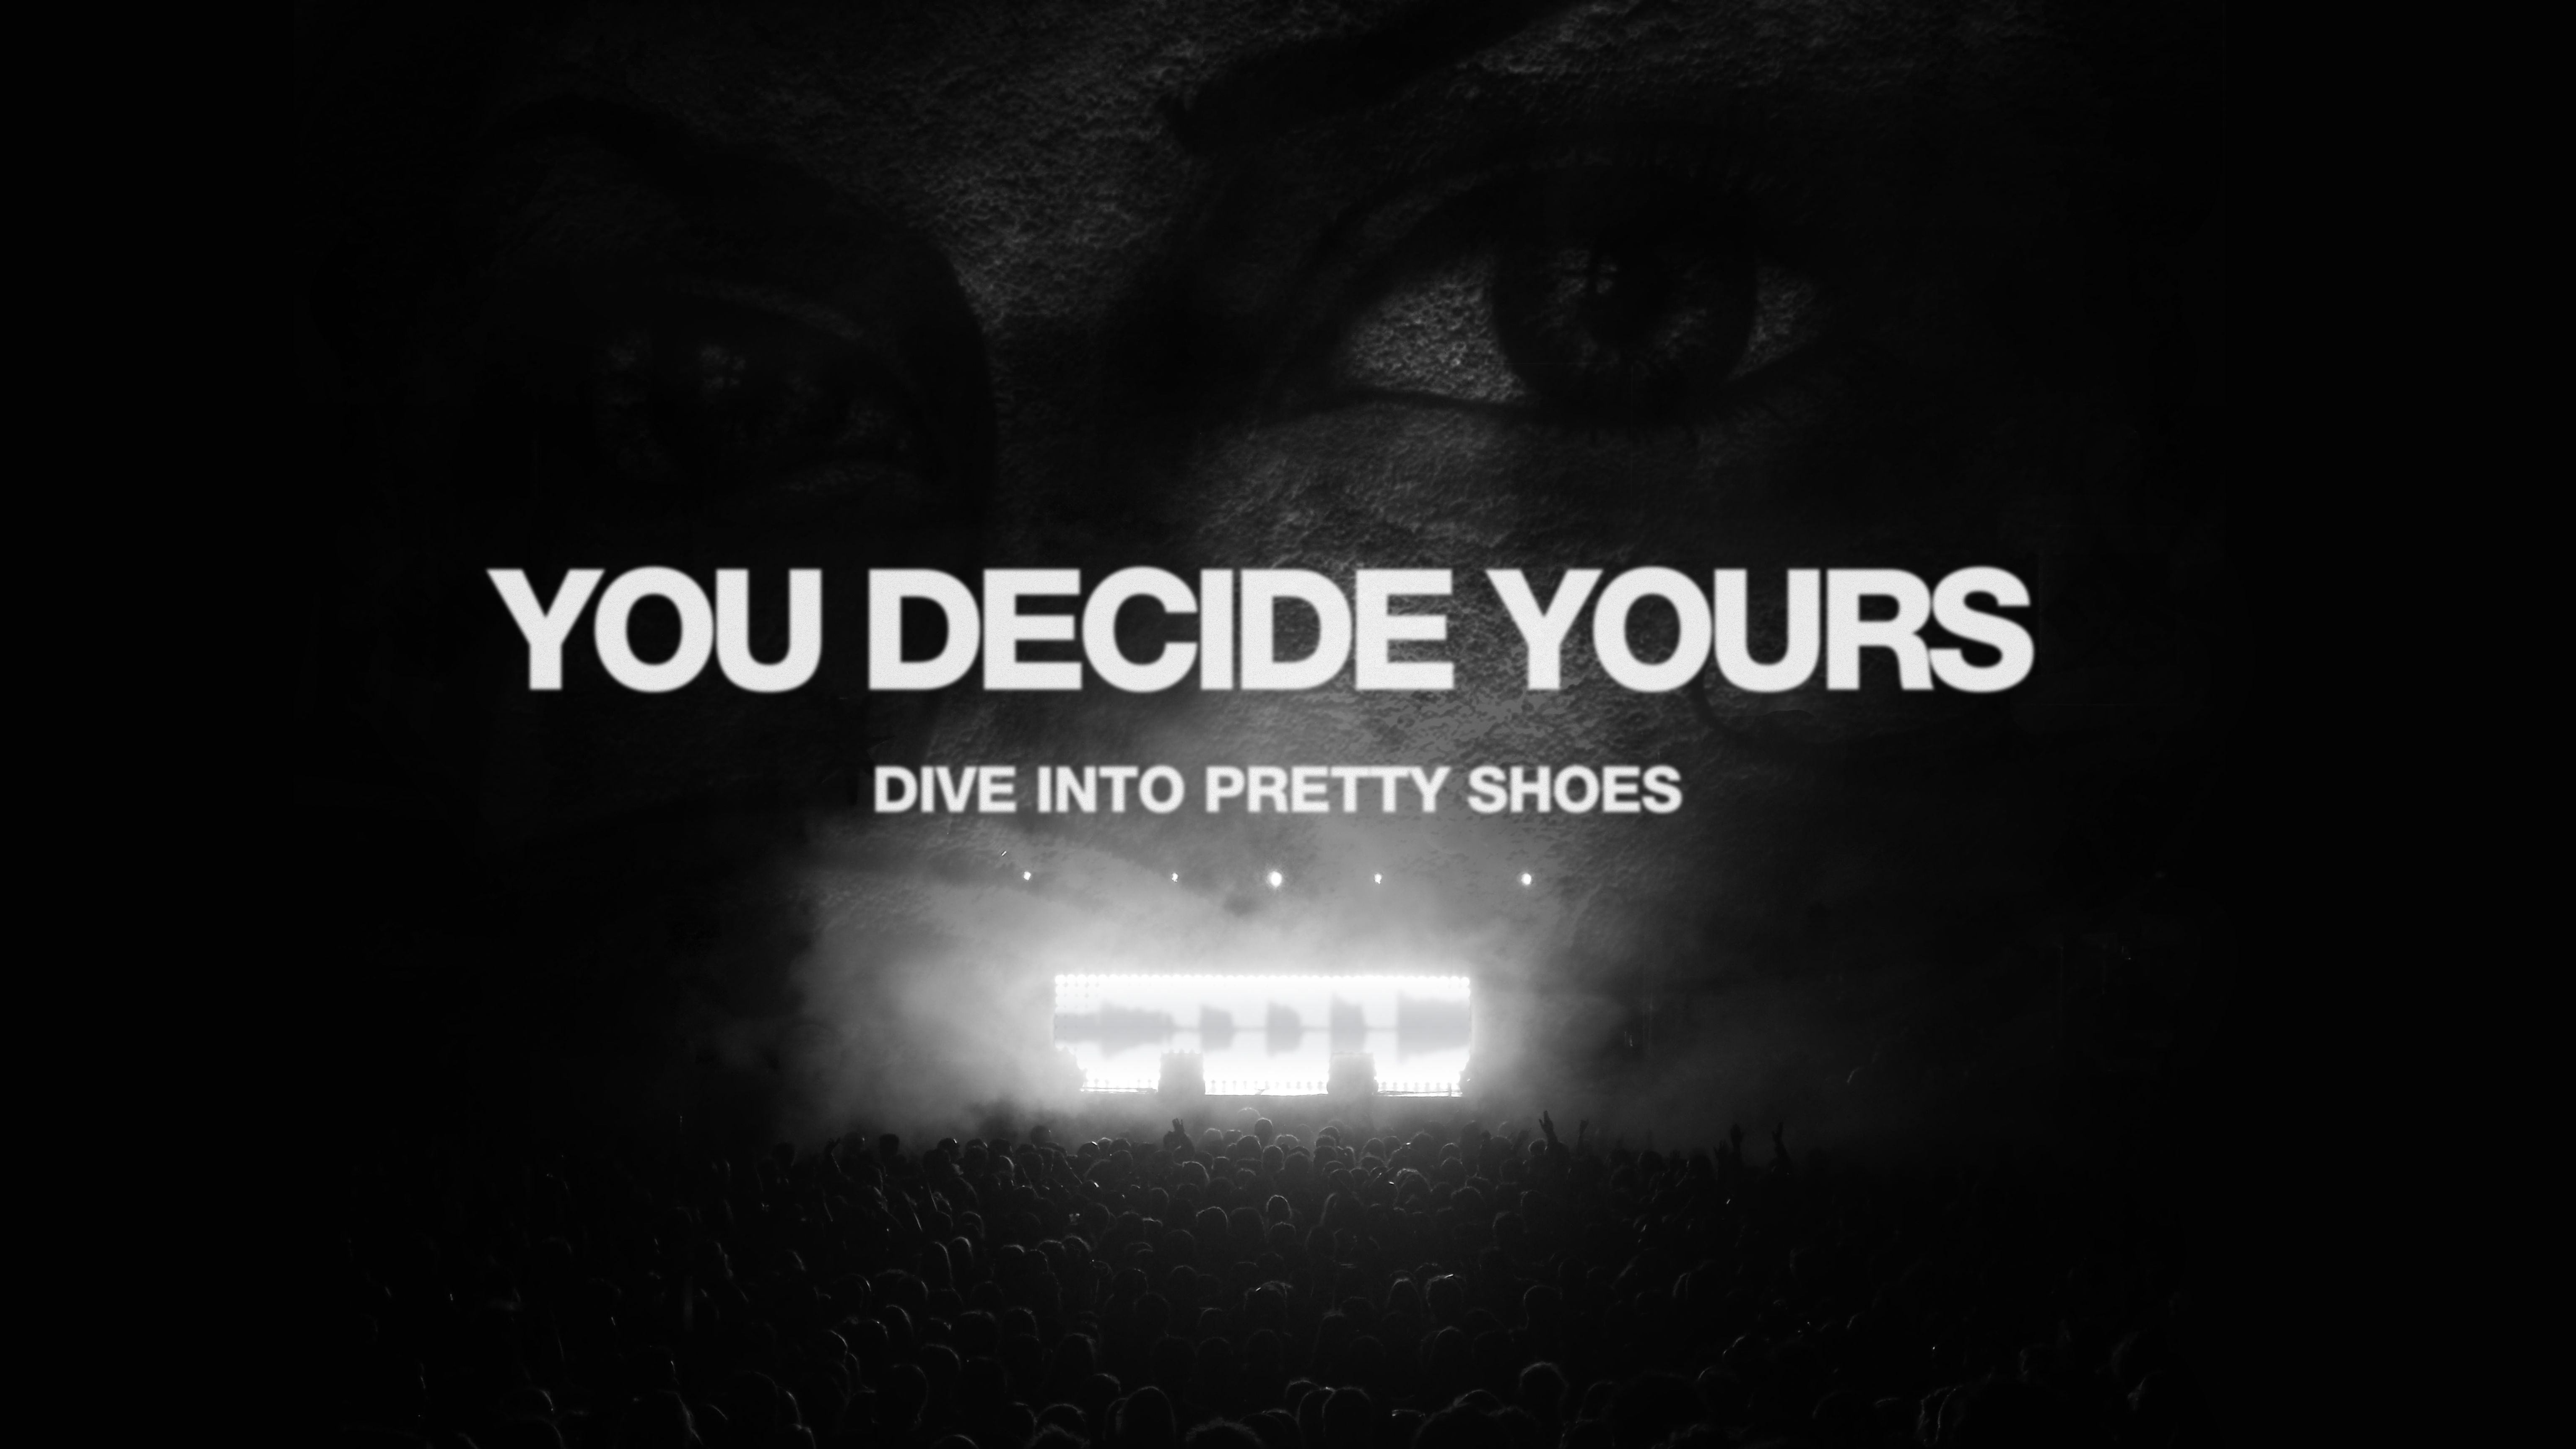 Dive Into Pretty Shoes - You Decide Yours